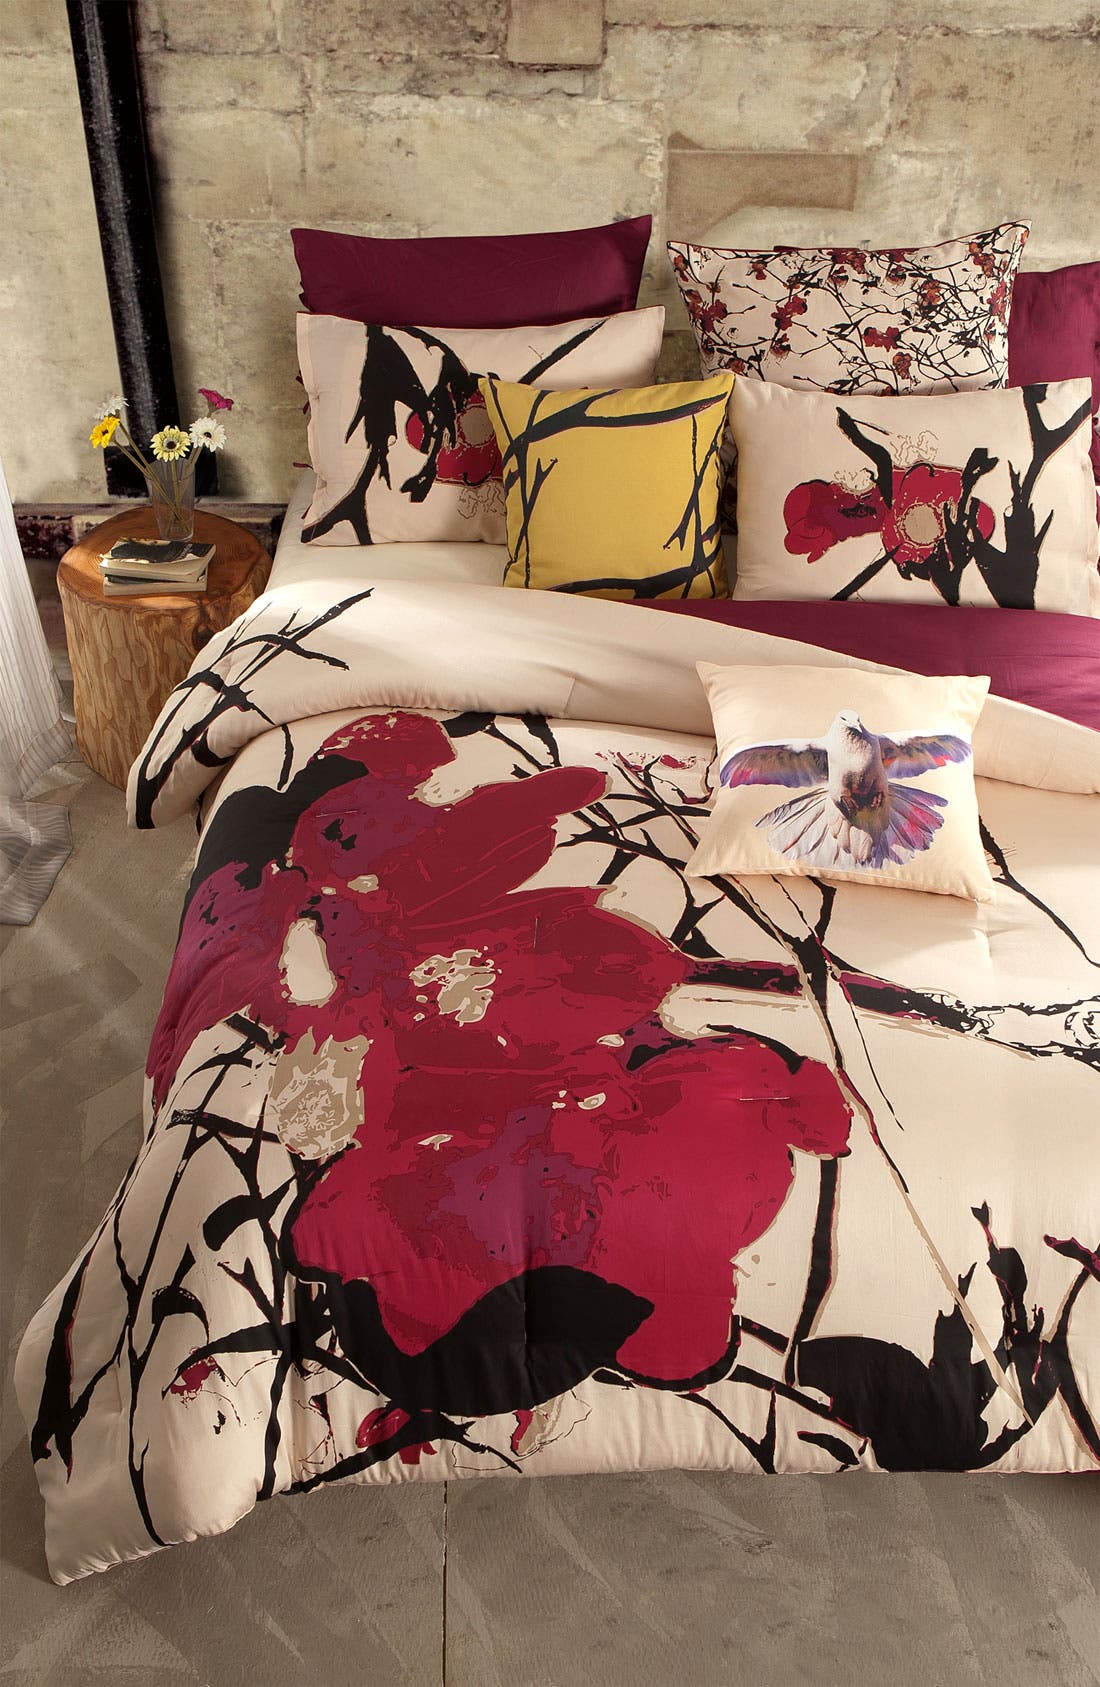 Alternate Image 1 Selected - kensie 'Blossom' 300 Thread Count Cotton Comforter (Online Only)